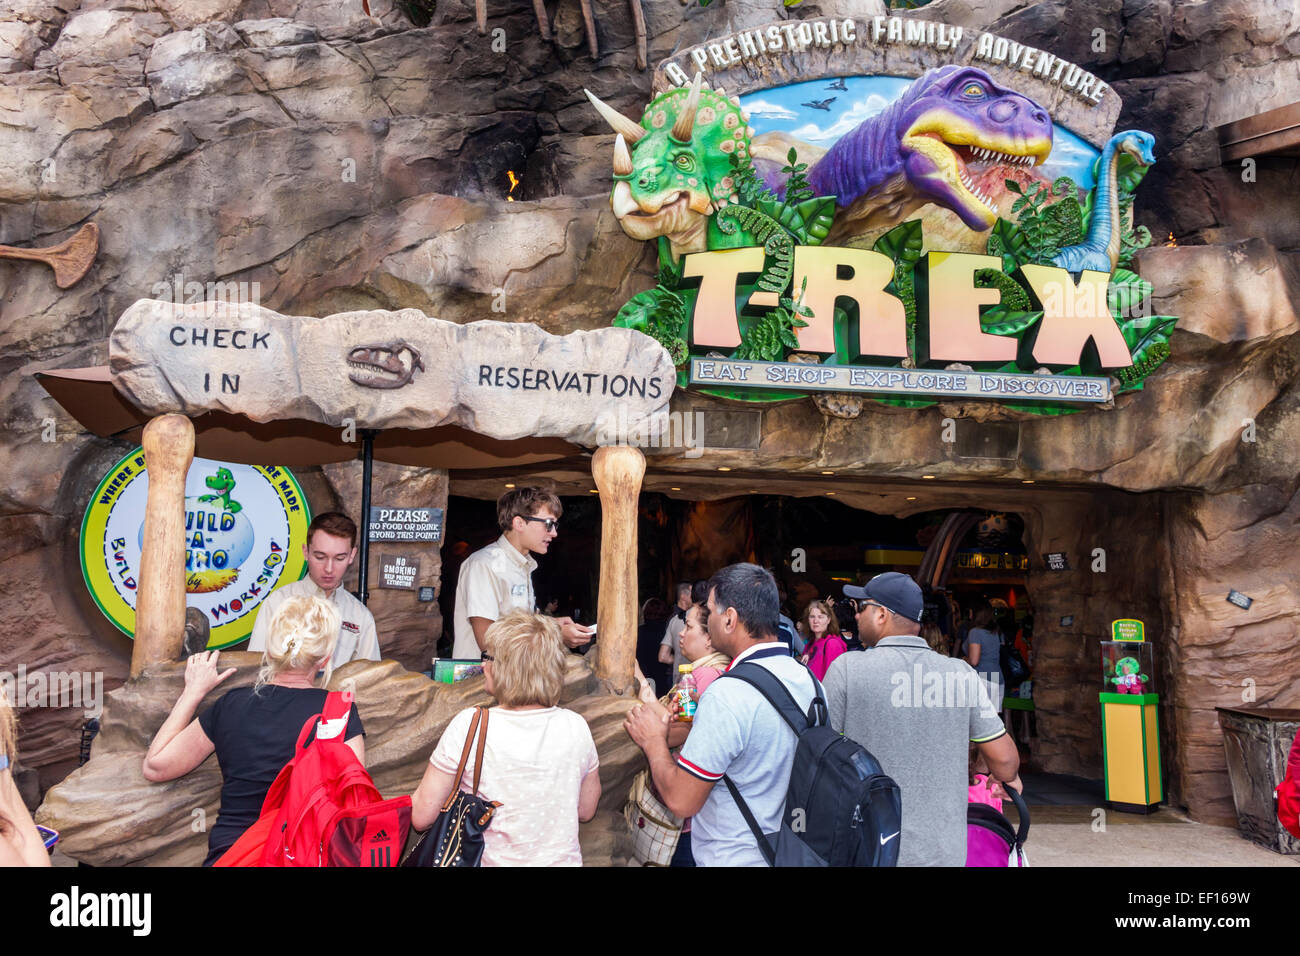 Orlando Florida Lake Buena Vista Downtown Disney shopping dining entertainment T-Rex restaurant entrance dinosaur - Stock Image